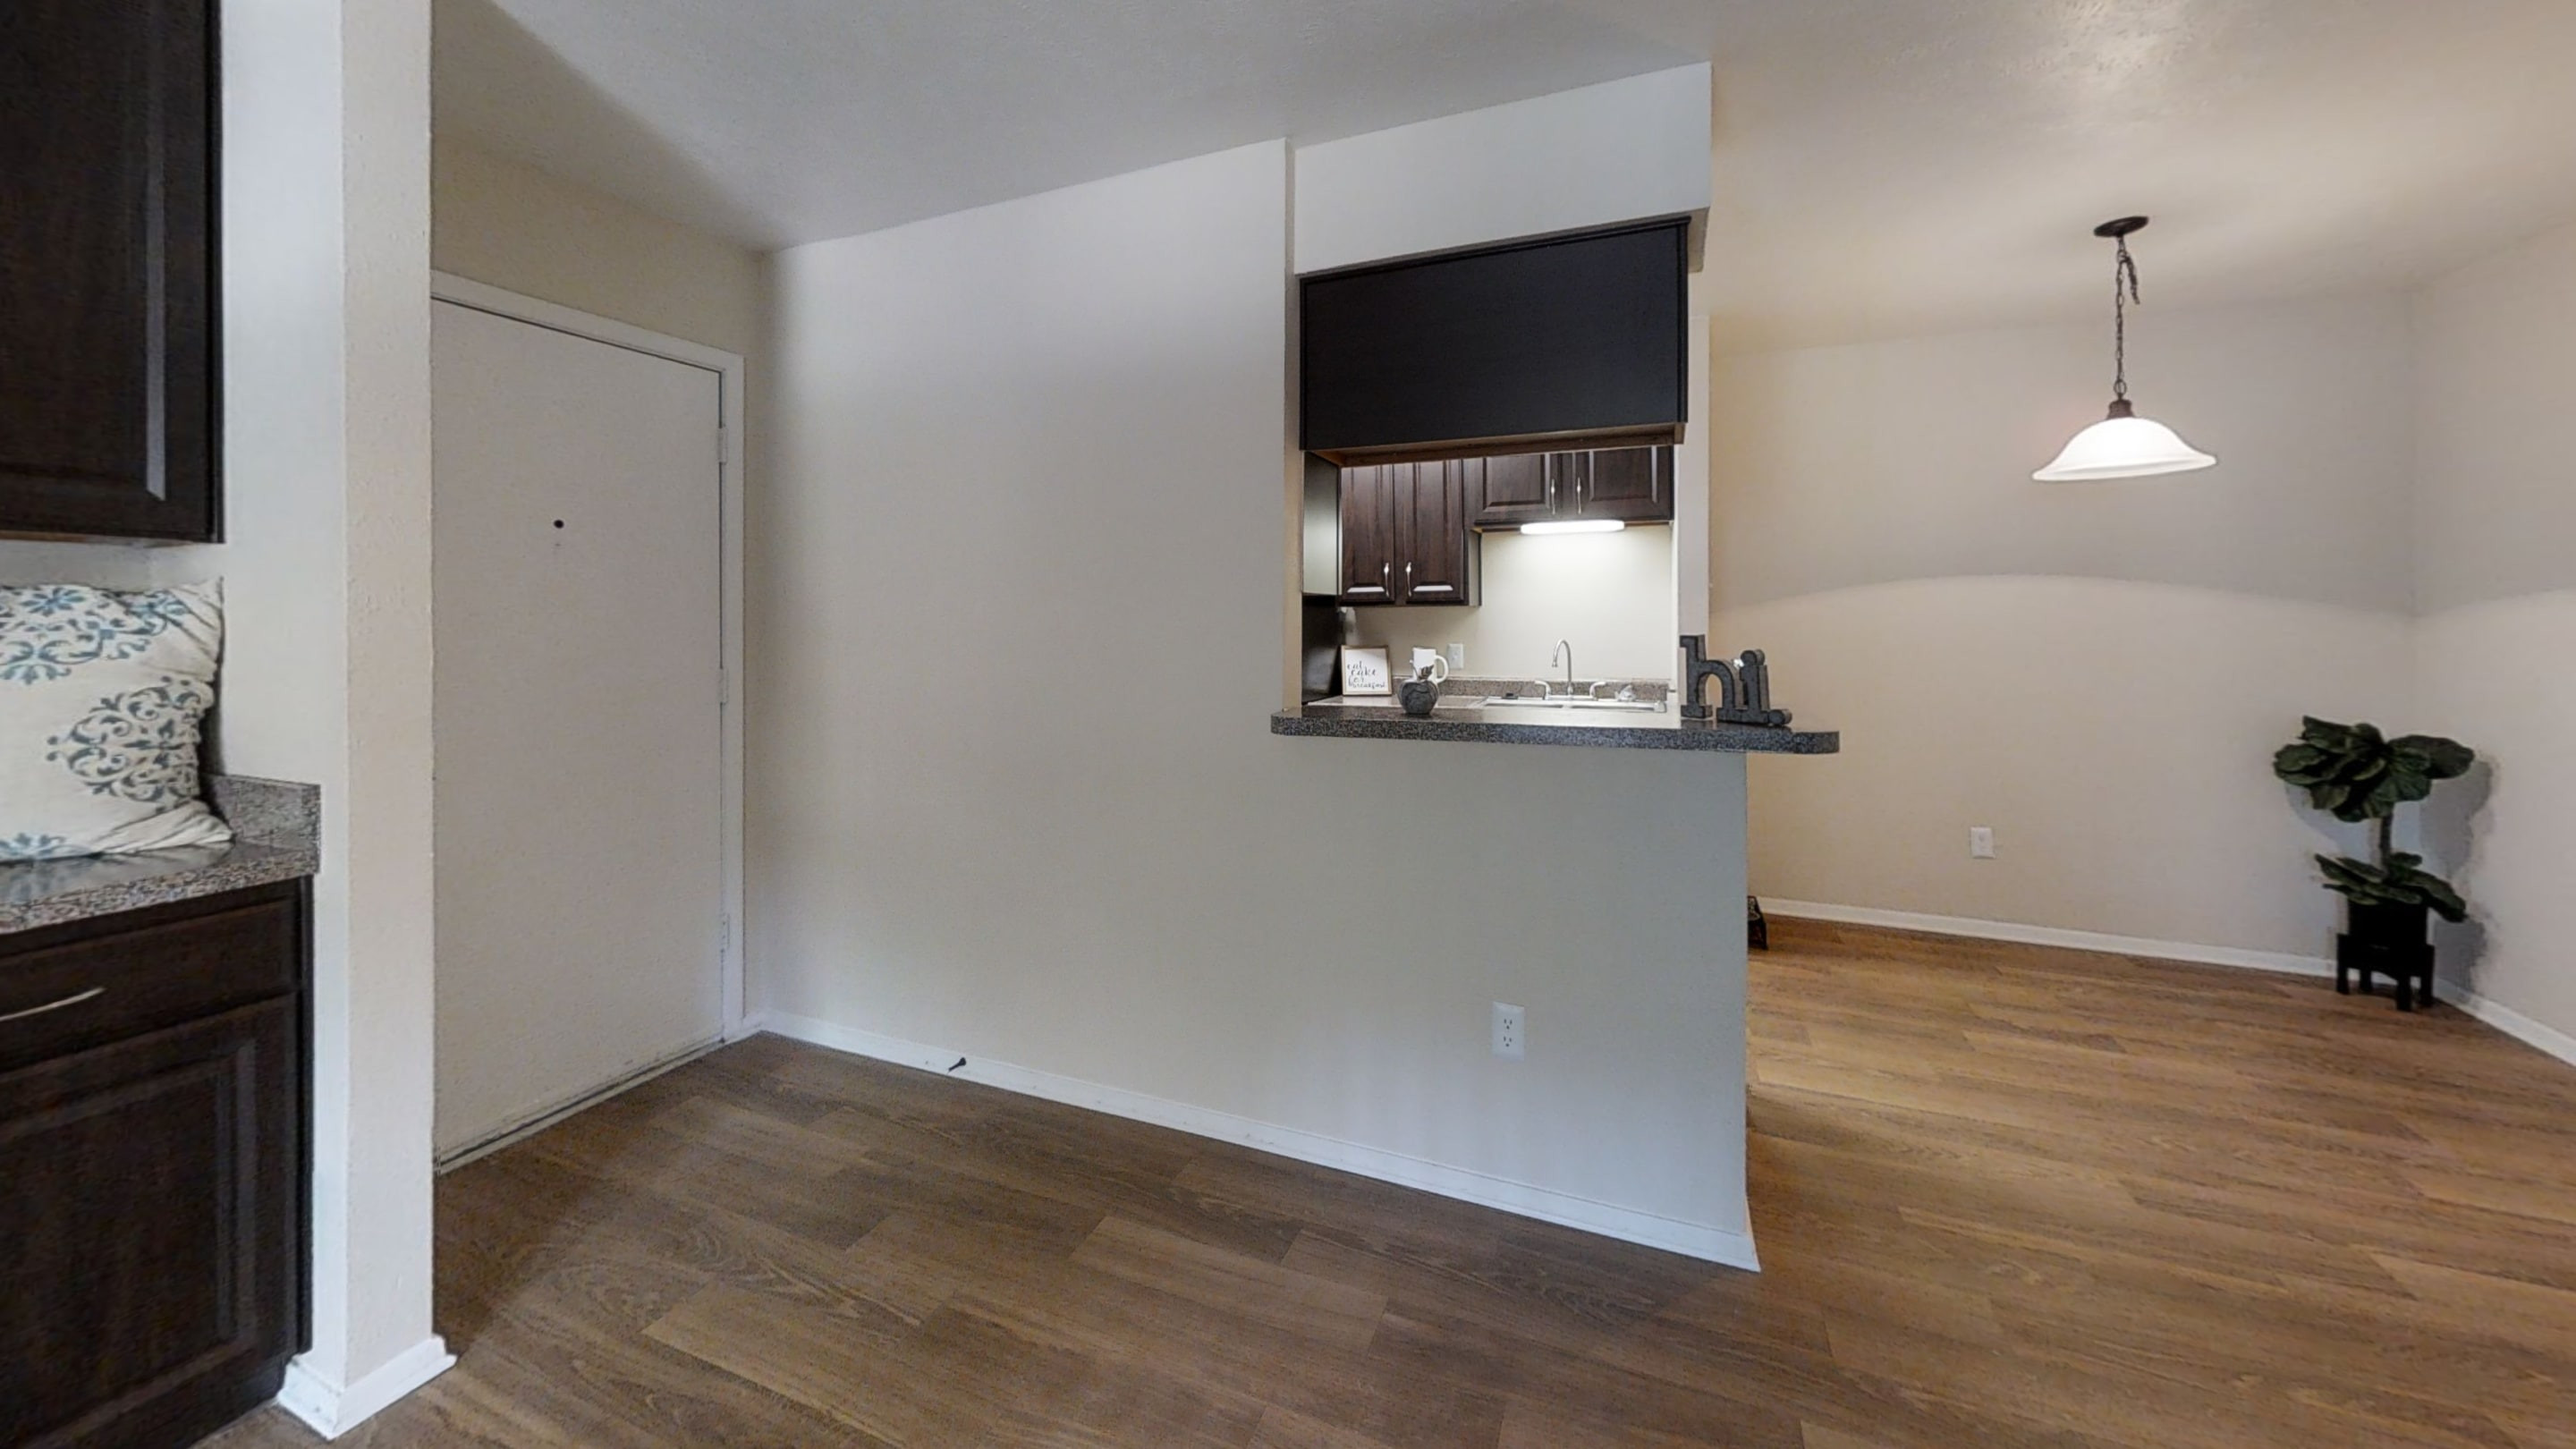 hardwood flooring south bend in of 100 best apartments in fort worth tx with pictures inside 9990ae1e7c06fcd90d1b3d7f07839569